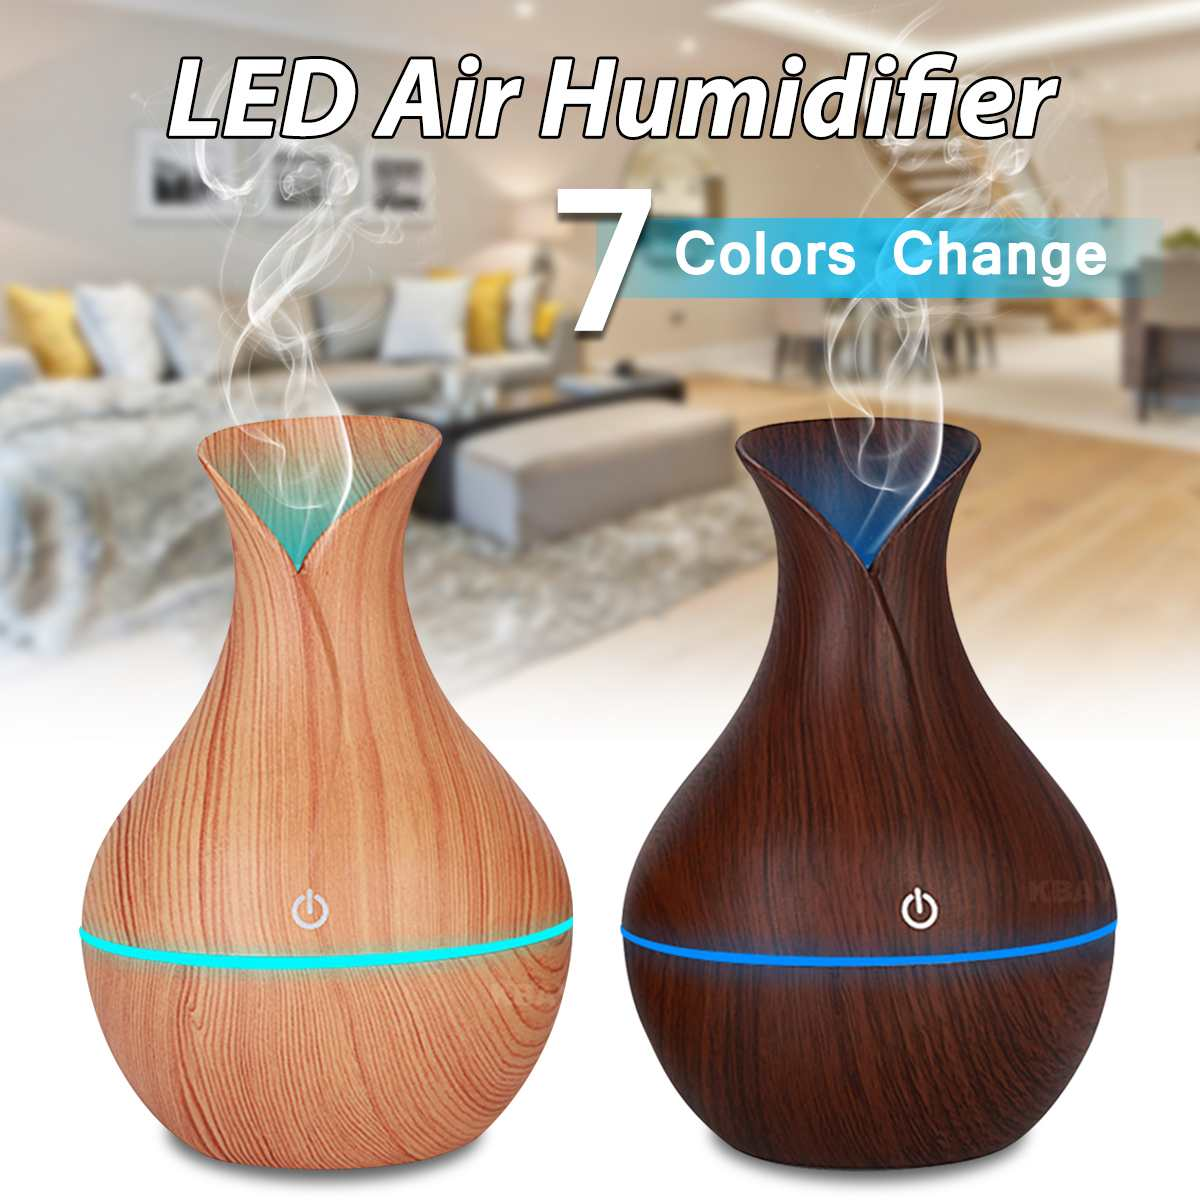 Ultrasonic Humidifier Air Purifier Essential Oil Diffuser Touch Mode 7 Color LED Night Lamp USB Mist Maker Household Humidifiers